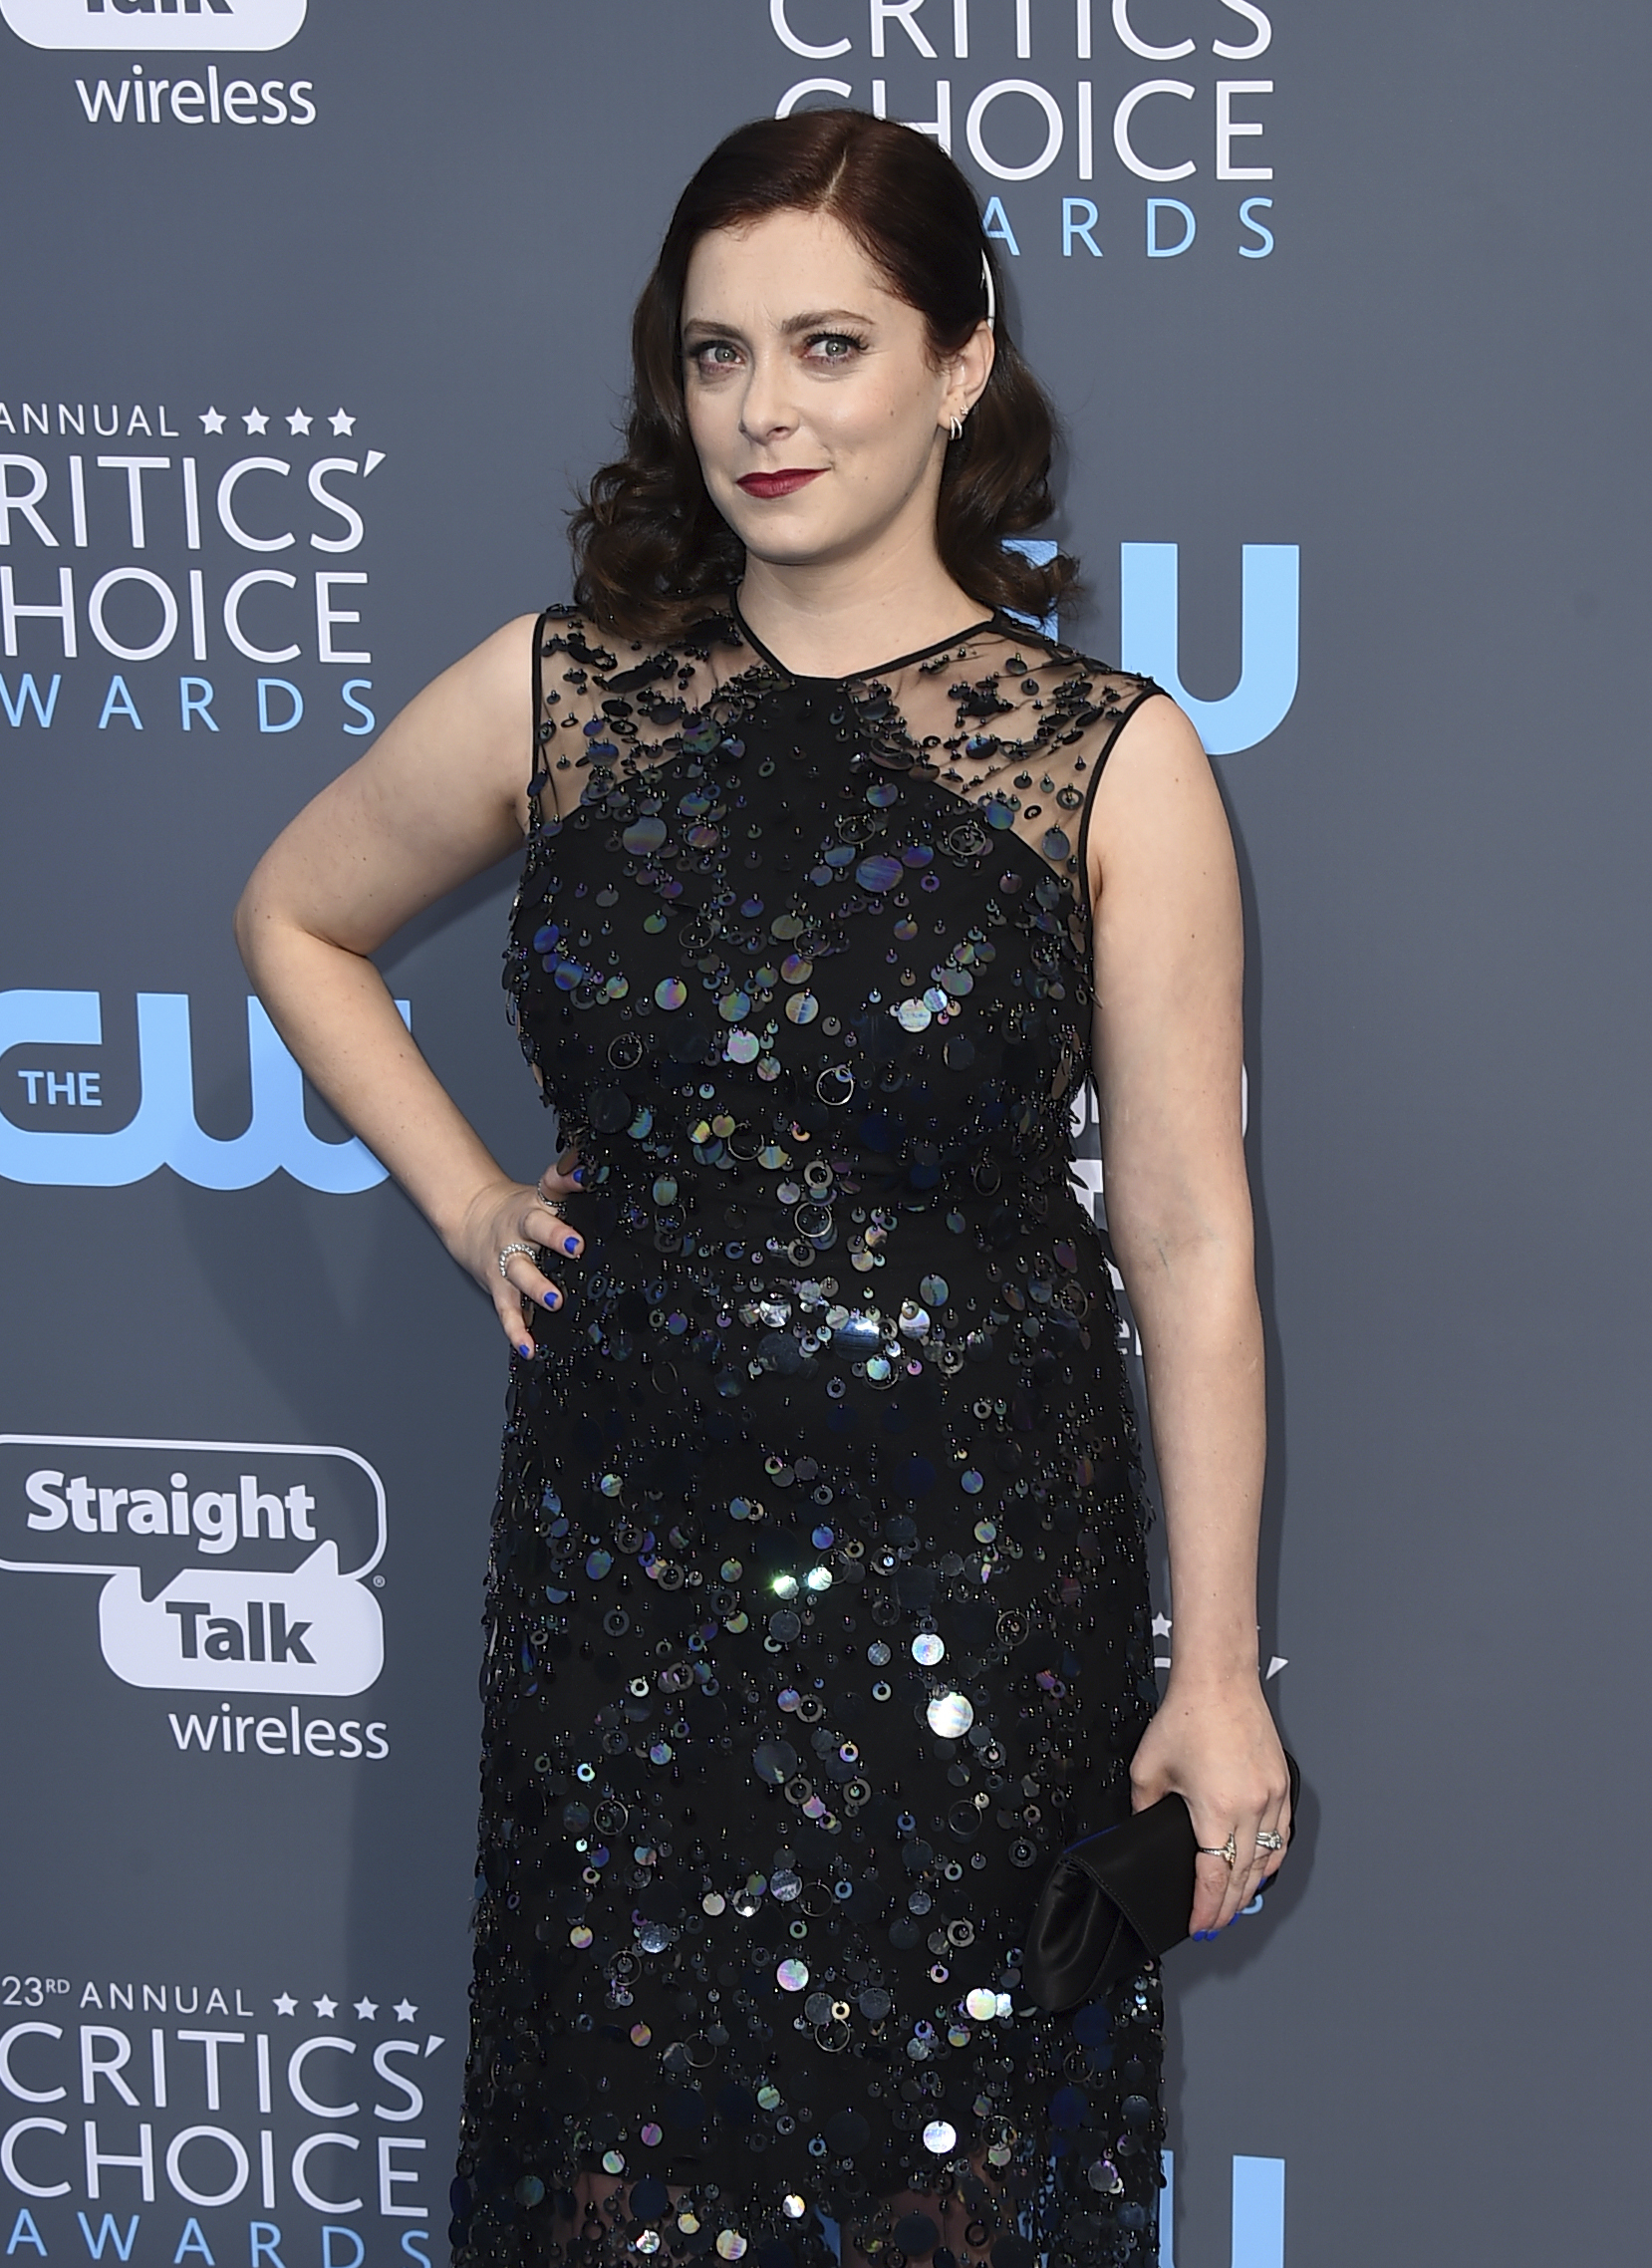 <div class='meta'><div class='origin-logo' data-origin='AP'></div><span class='caption-text' data-credit='Jordan Strauss/Invision/AP'>Rachel Bloom arrives at the 23rd annual Critics' Choice Awards at the Barker Hangar on Thursday, Jan. 11, 2018, in Santa Monica, Calif.</span></div>